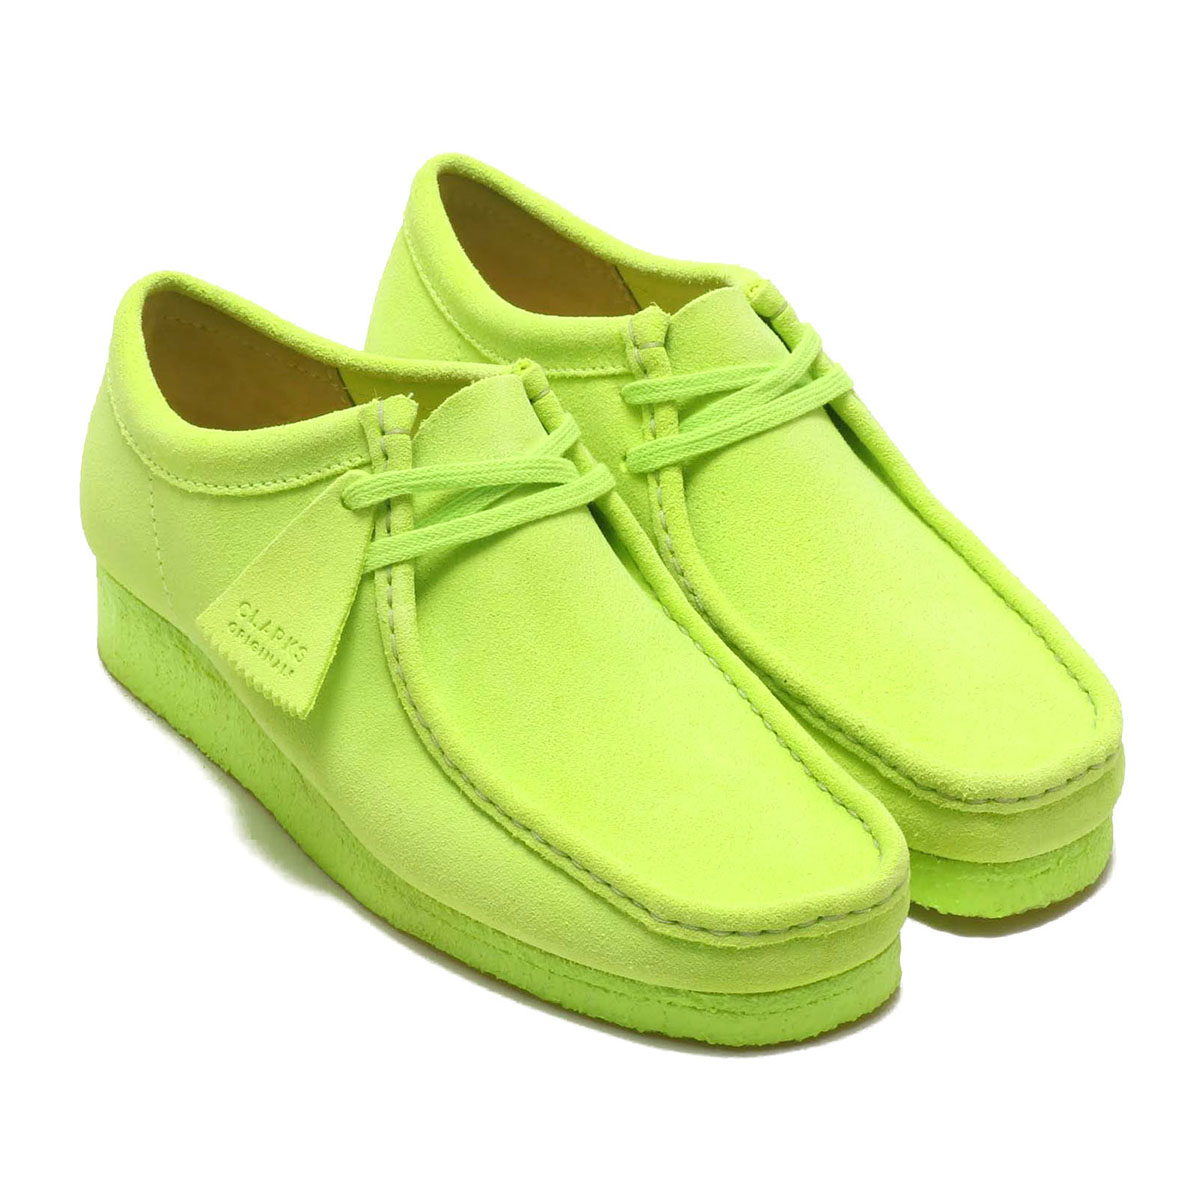 Clarks Wallabee(クラークス ワラビー)Lime Suede【メンズ ブーツ】20SP-I